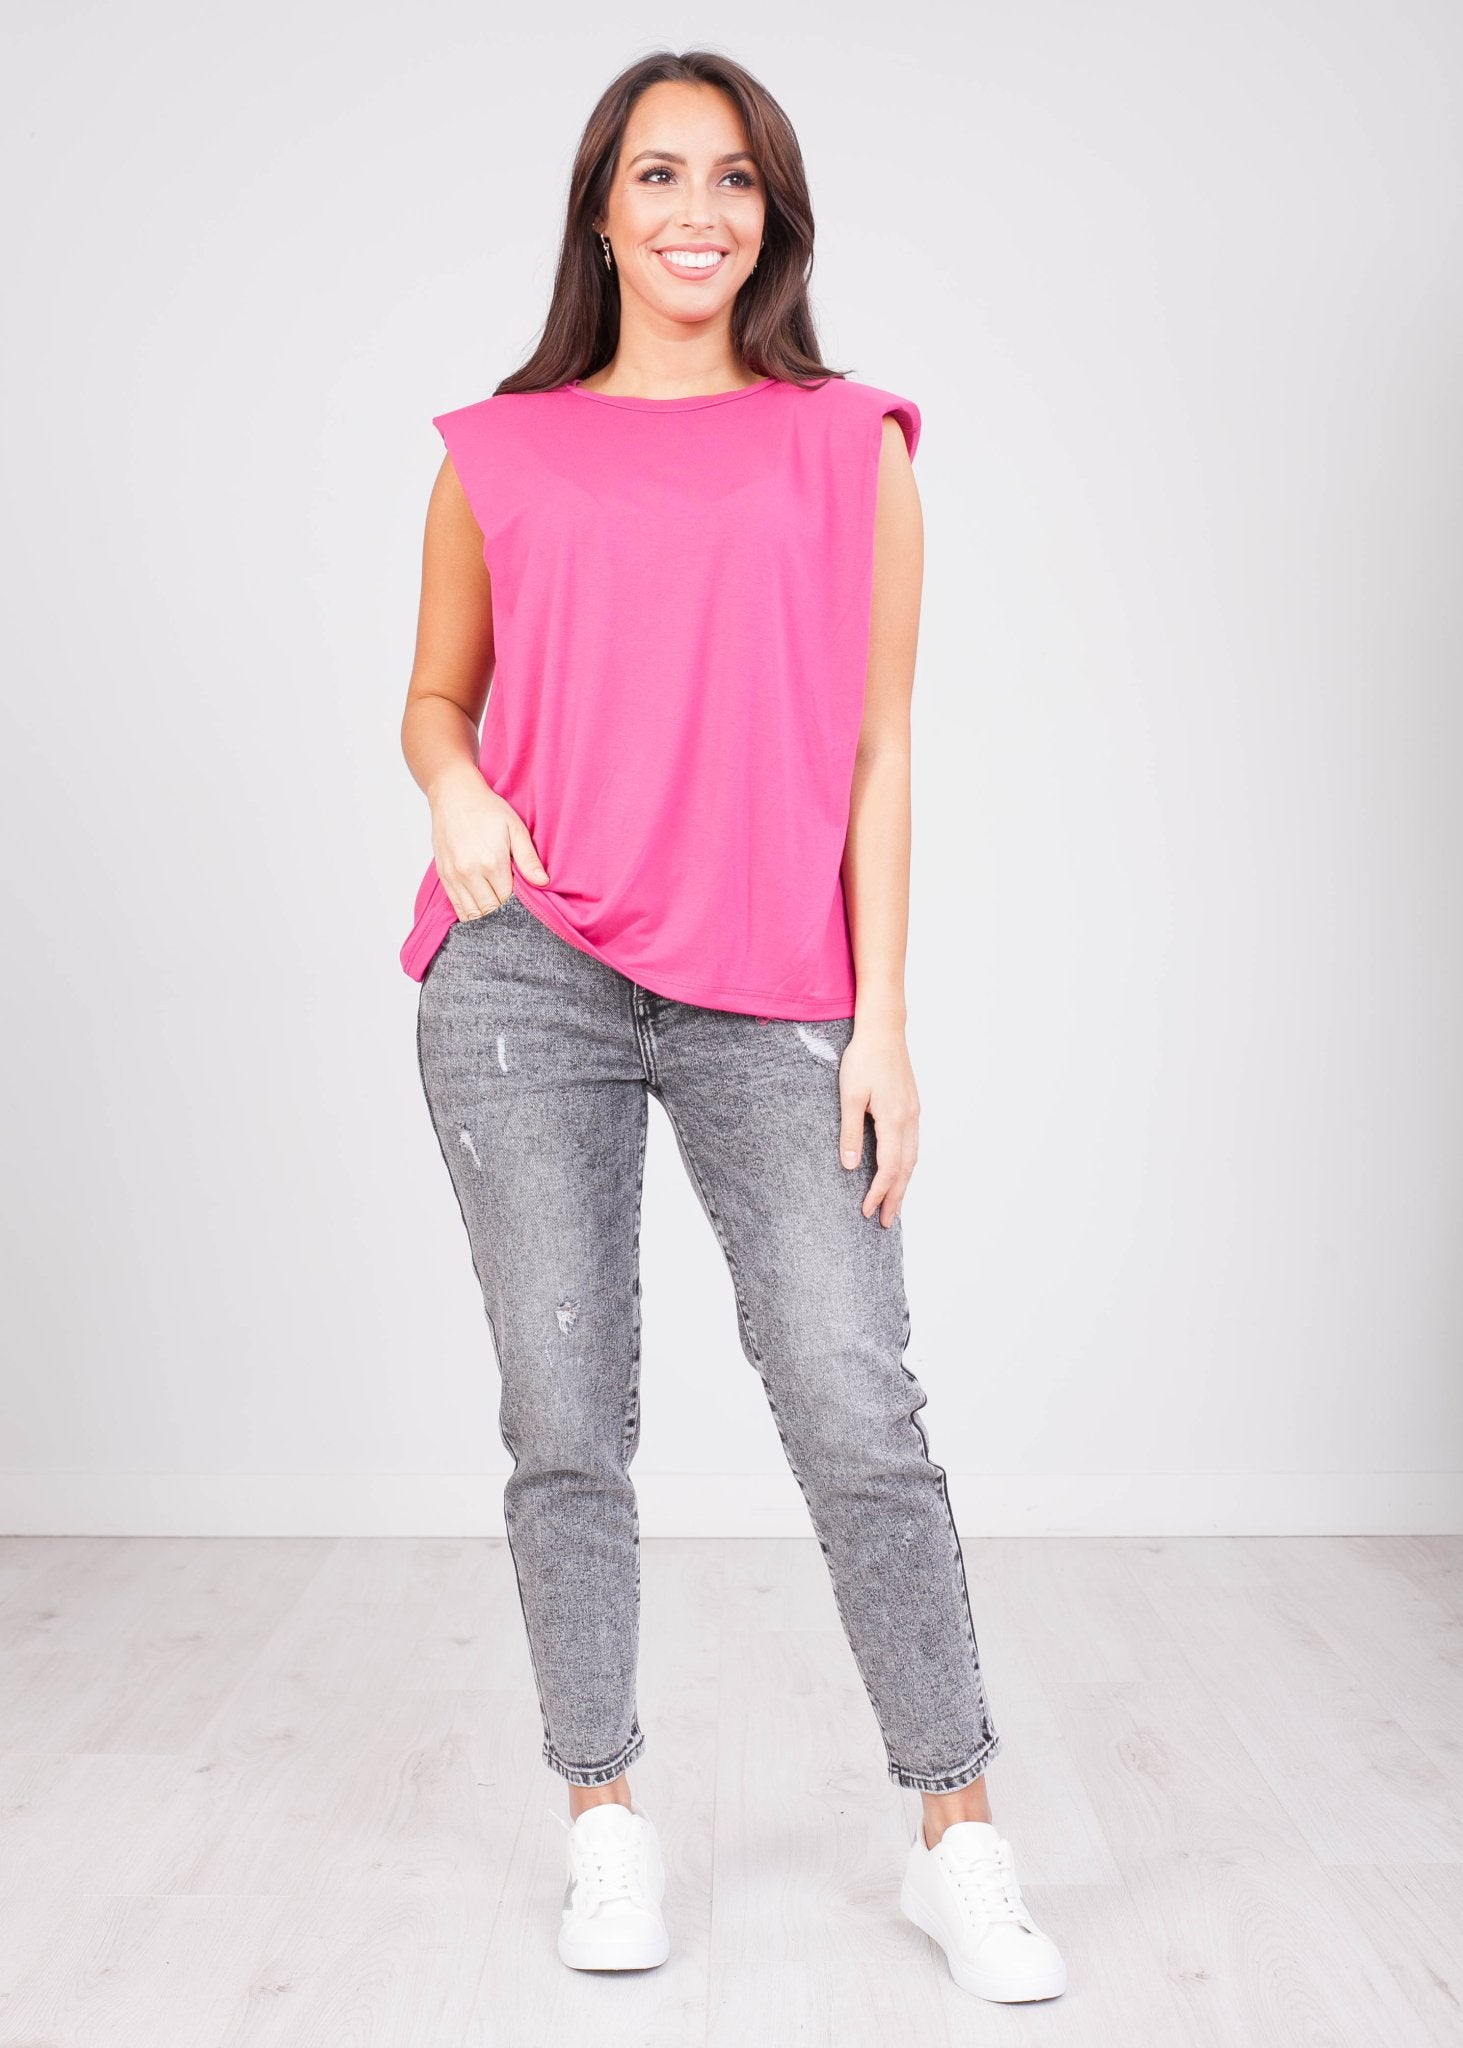 Charlee Pink Padded Top - The Walk in Wardrobe